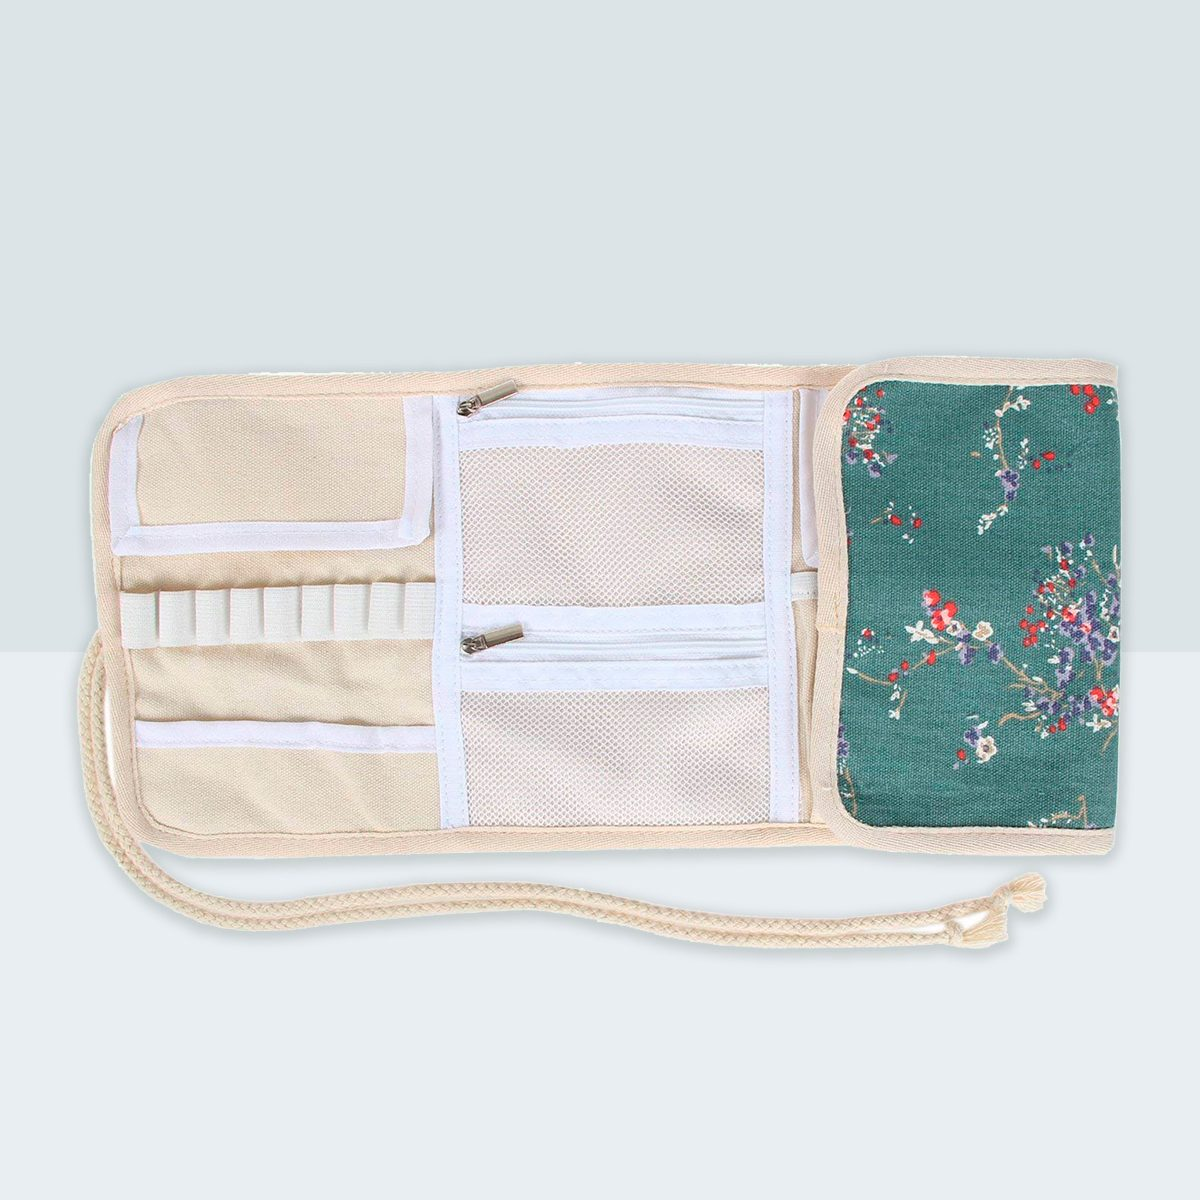 Teamoy Crochet Hook Case, Canvas Roll Bag Holder Organizer for Various Crochet Needles and Knitting Accessories, Compact and All-in-one, Plum Flowers